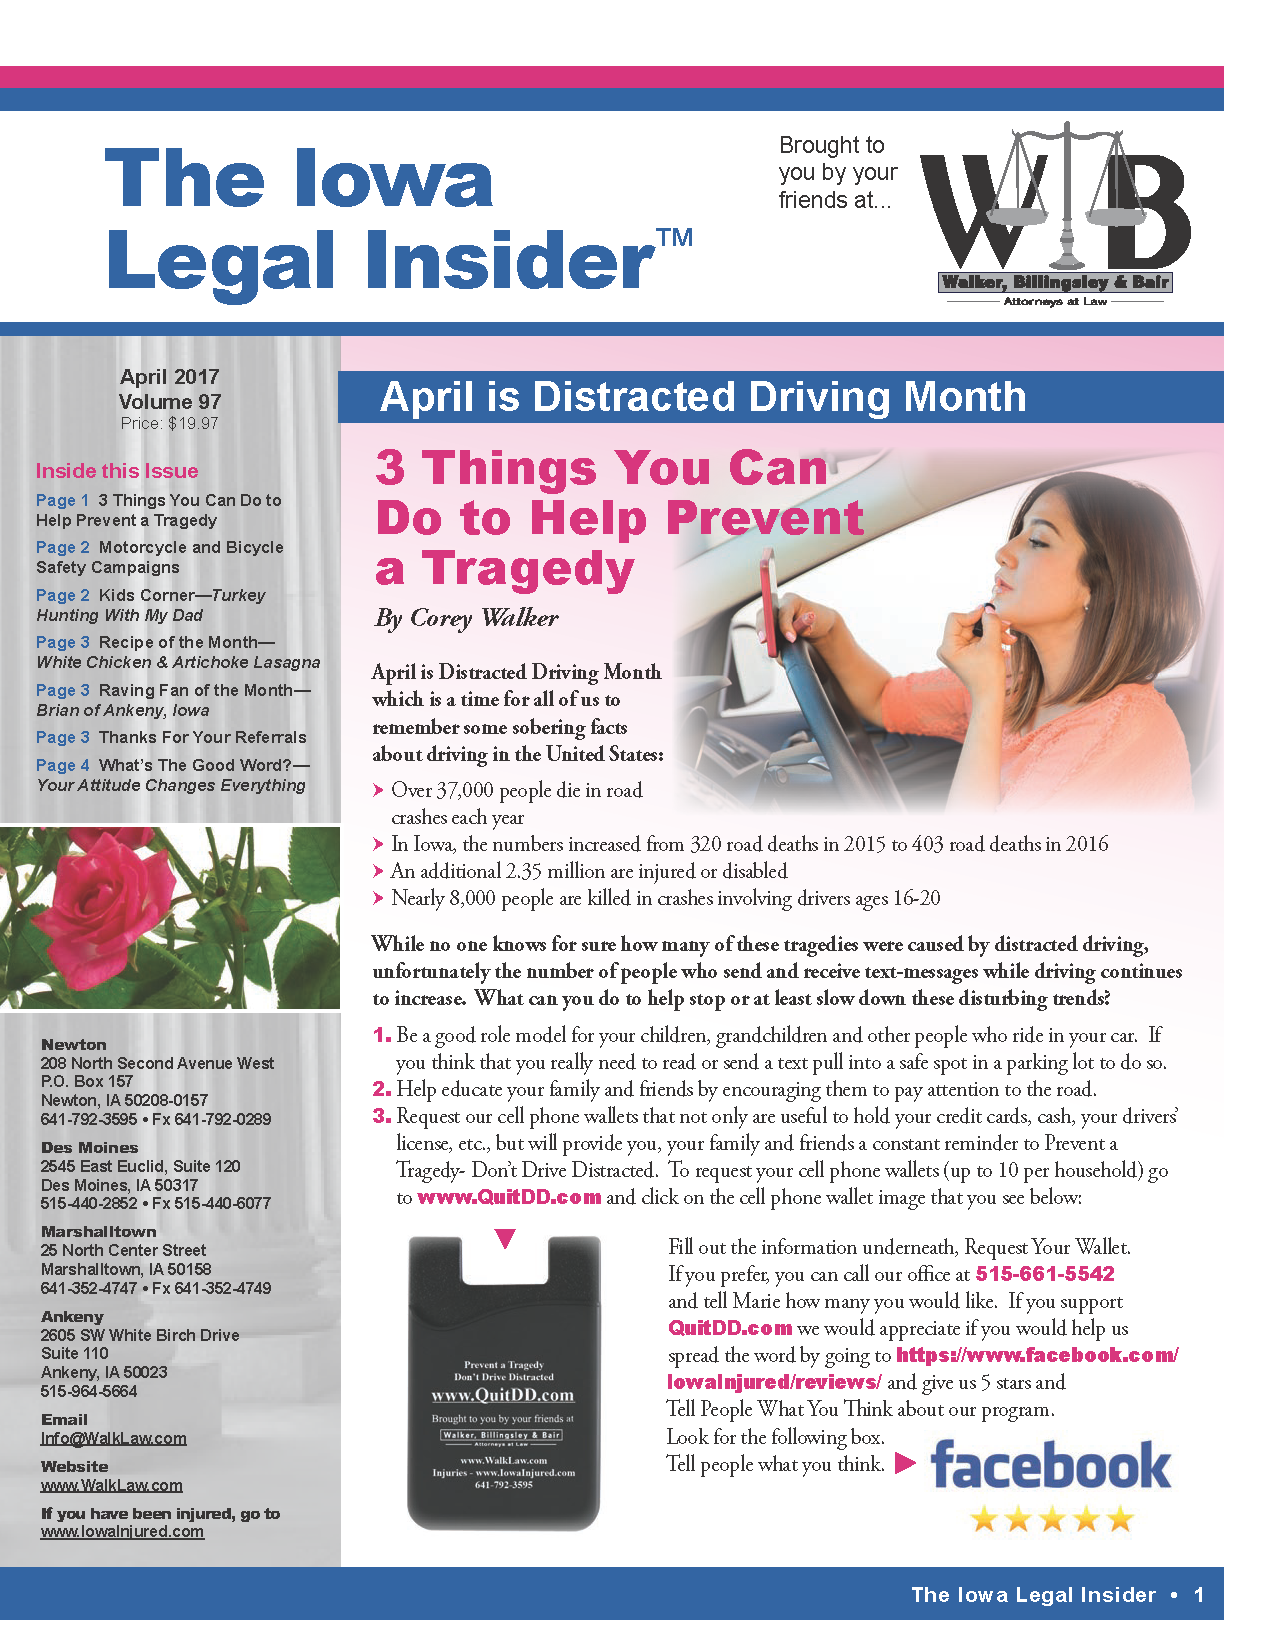 Distracted Driving awareness month issue of the iowa legal insider